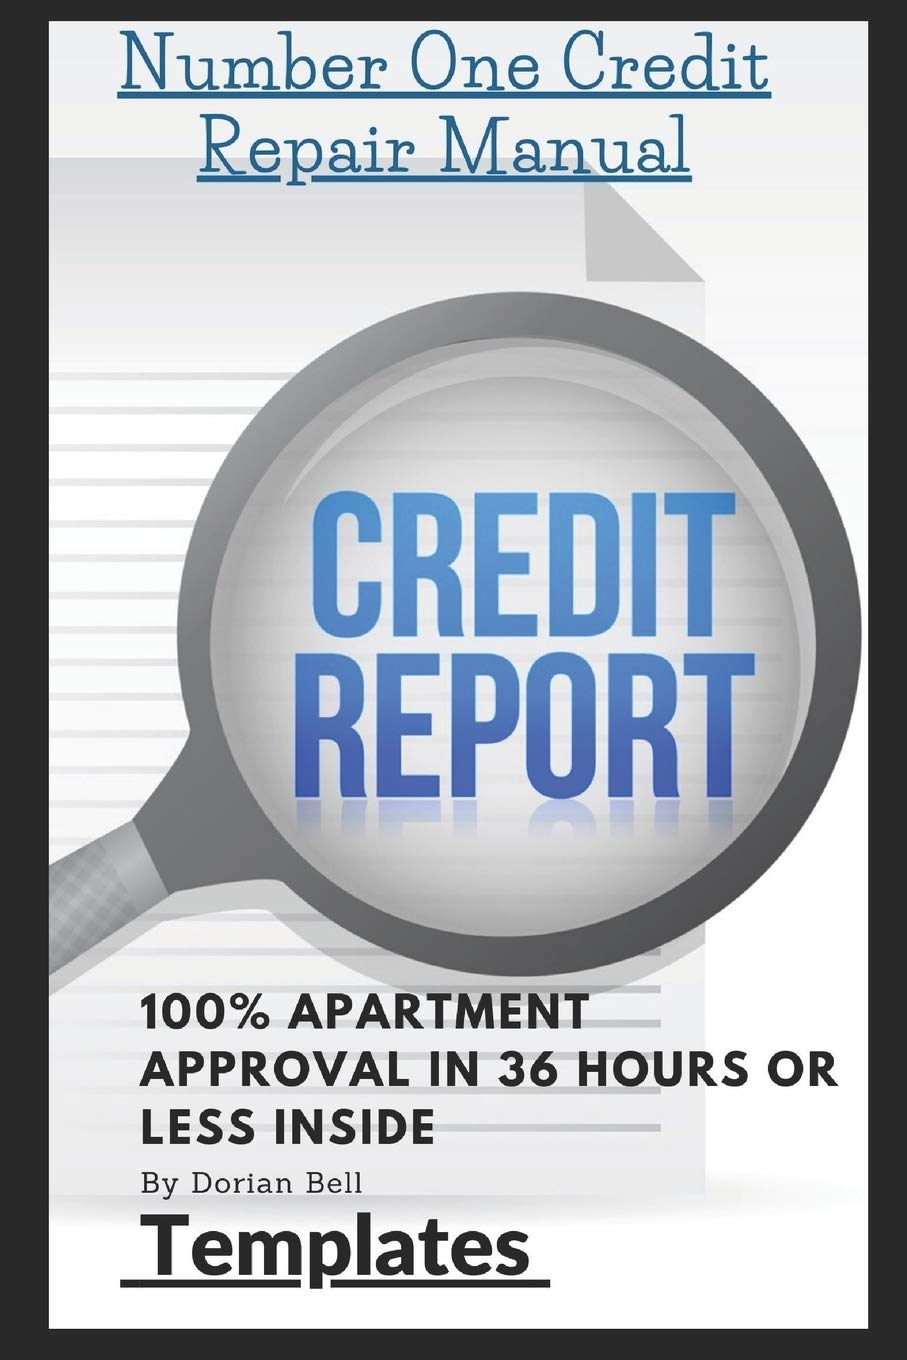 Number One Credit Repair Templates Step By Step Guide To Repair Credit Plus 100 Apartment Approval In 36 Hours Bell Dorian Rockwell Allen 9798610356679 Amazon Com Books